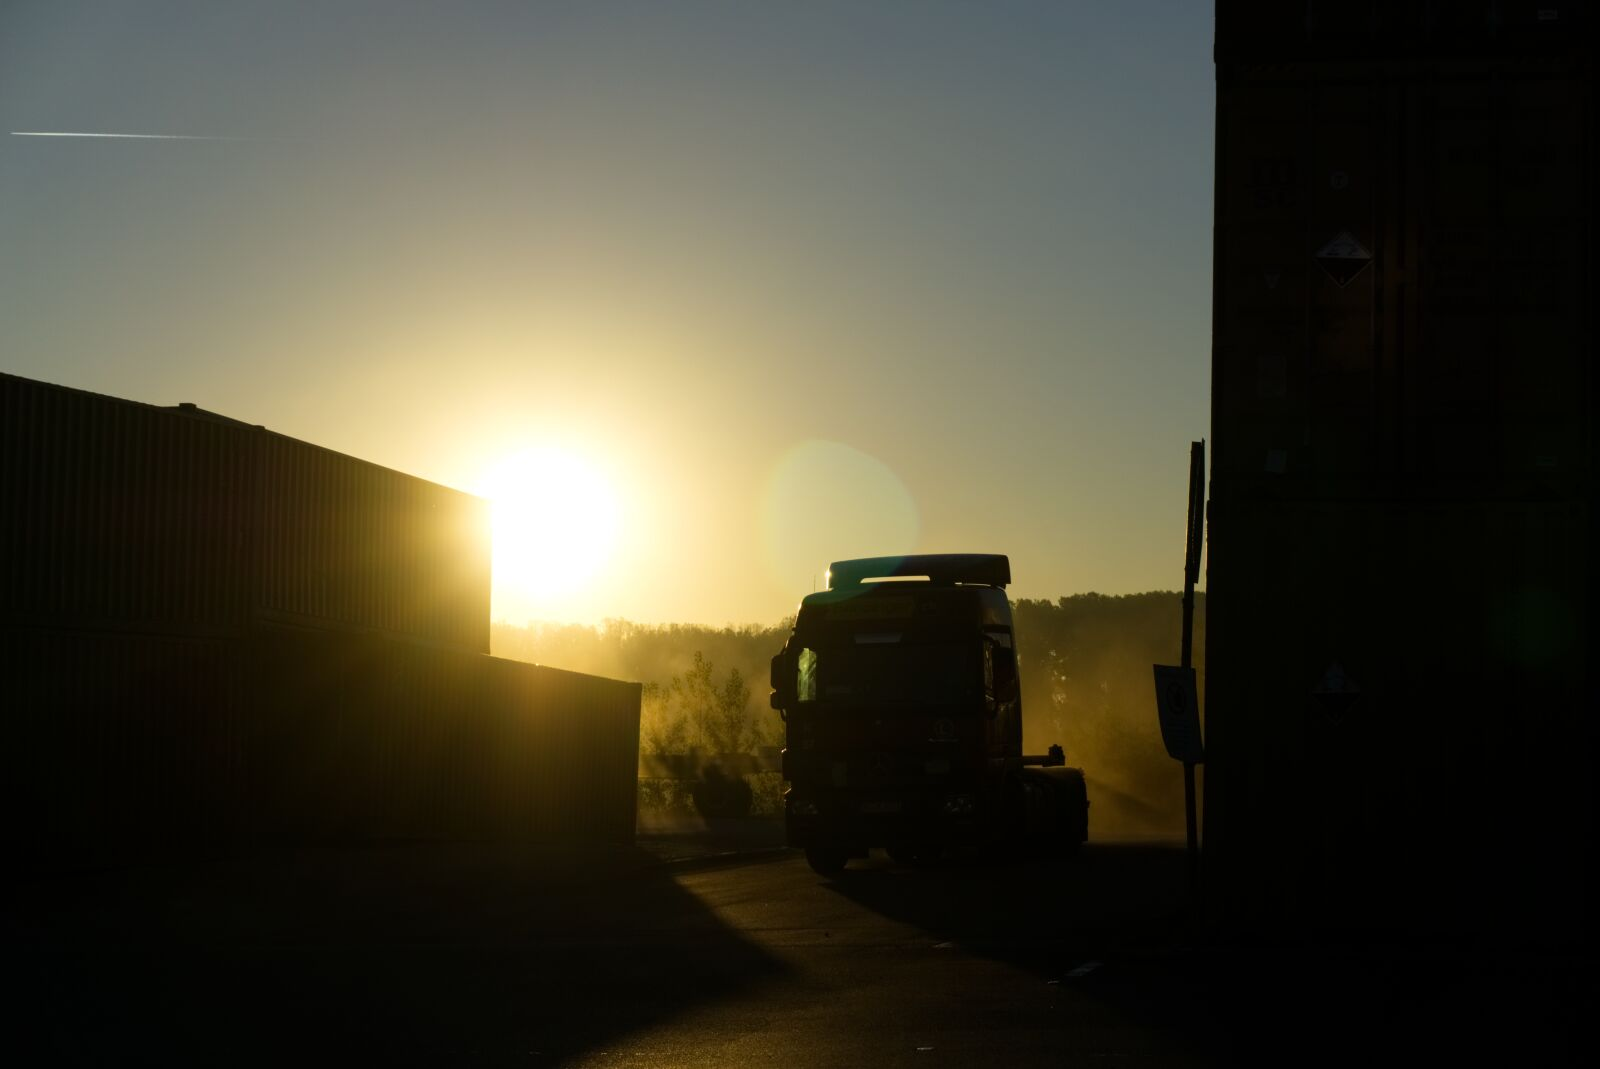 """Sony a6000 sample photo. """"Container, truck, fog"""" photography"""